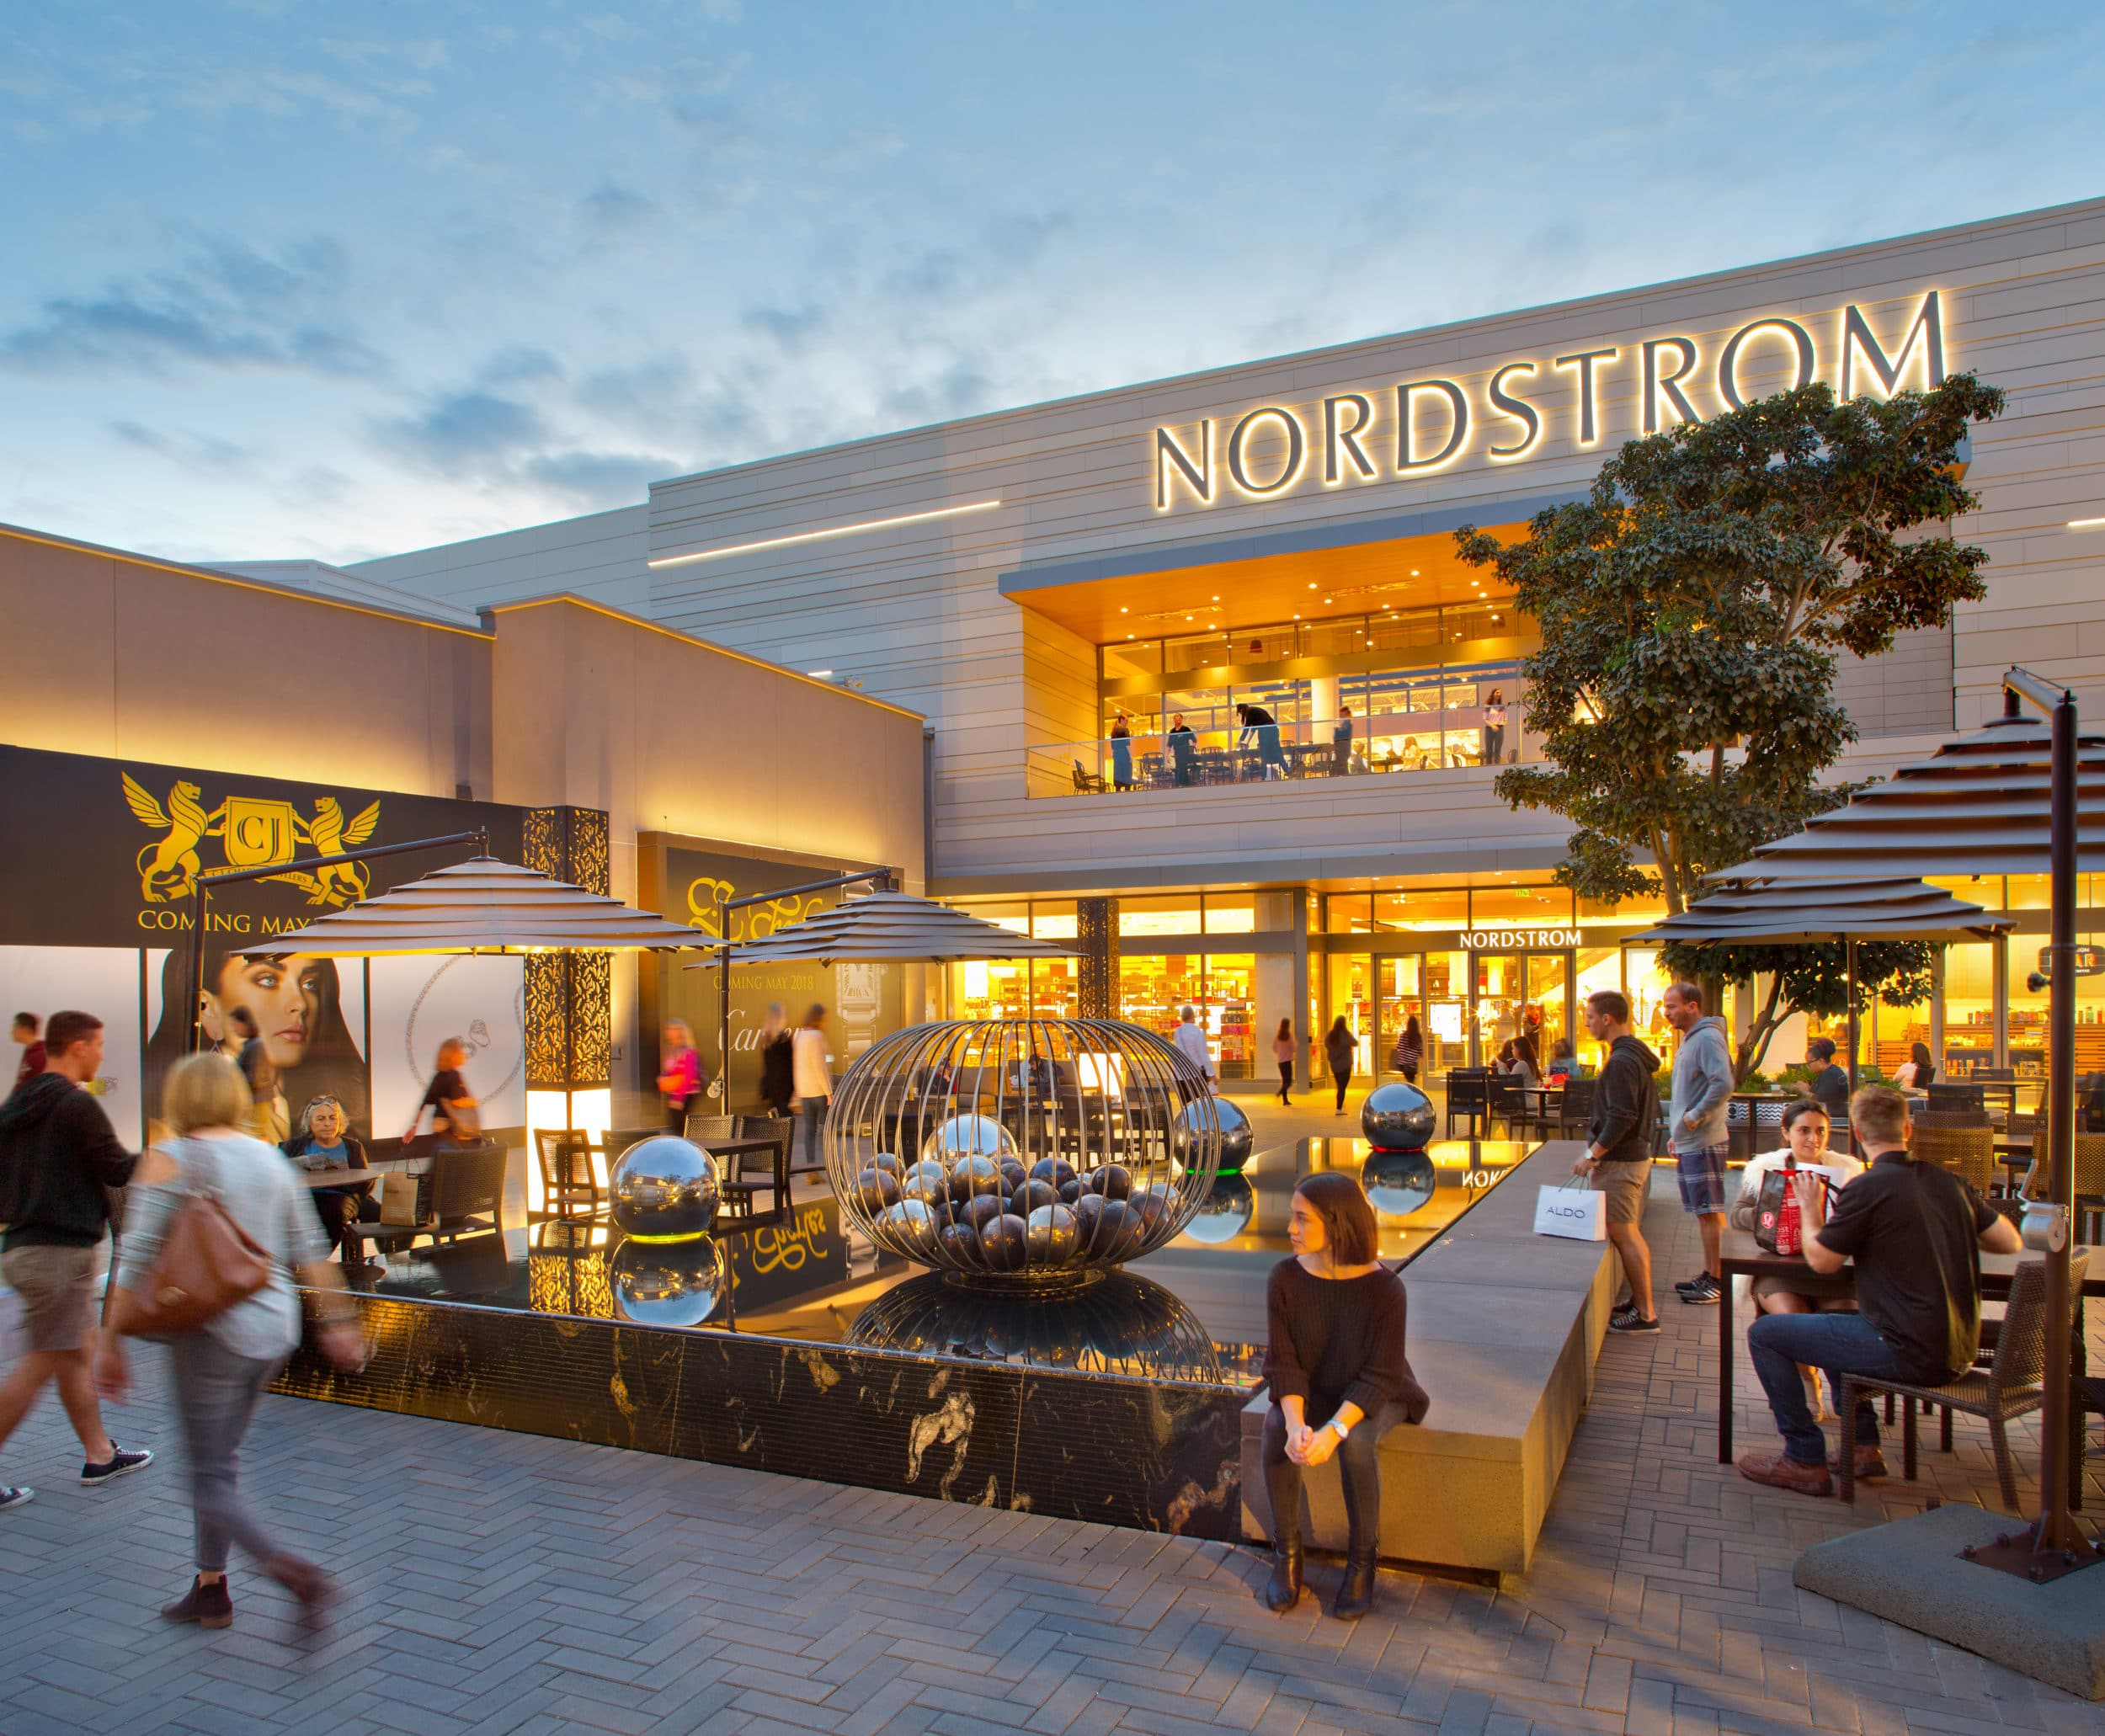 Best La Jolla Shopping: Westfield UTC mall